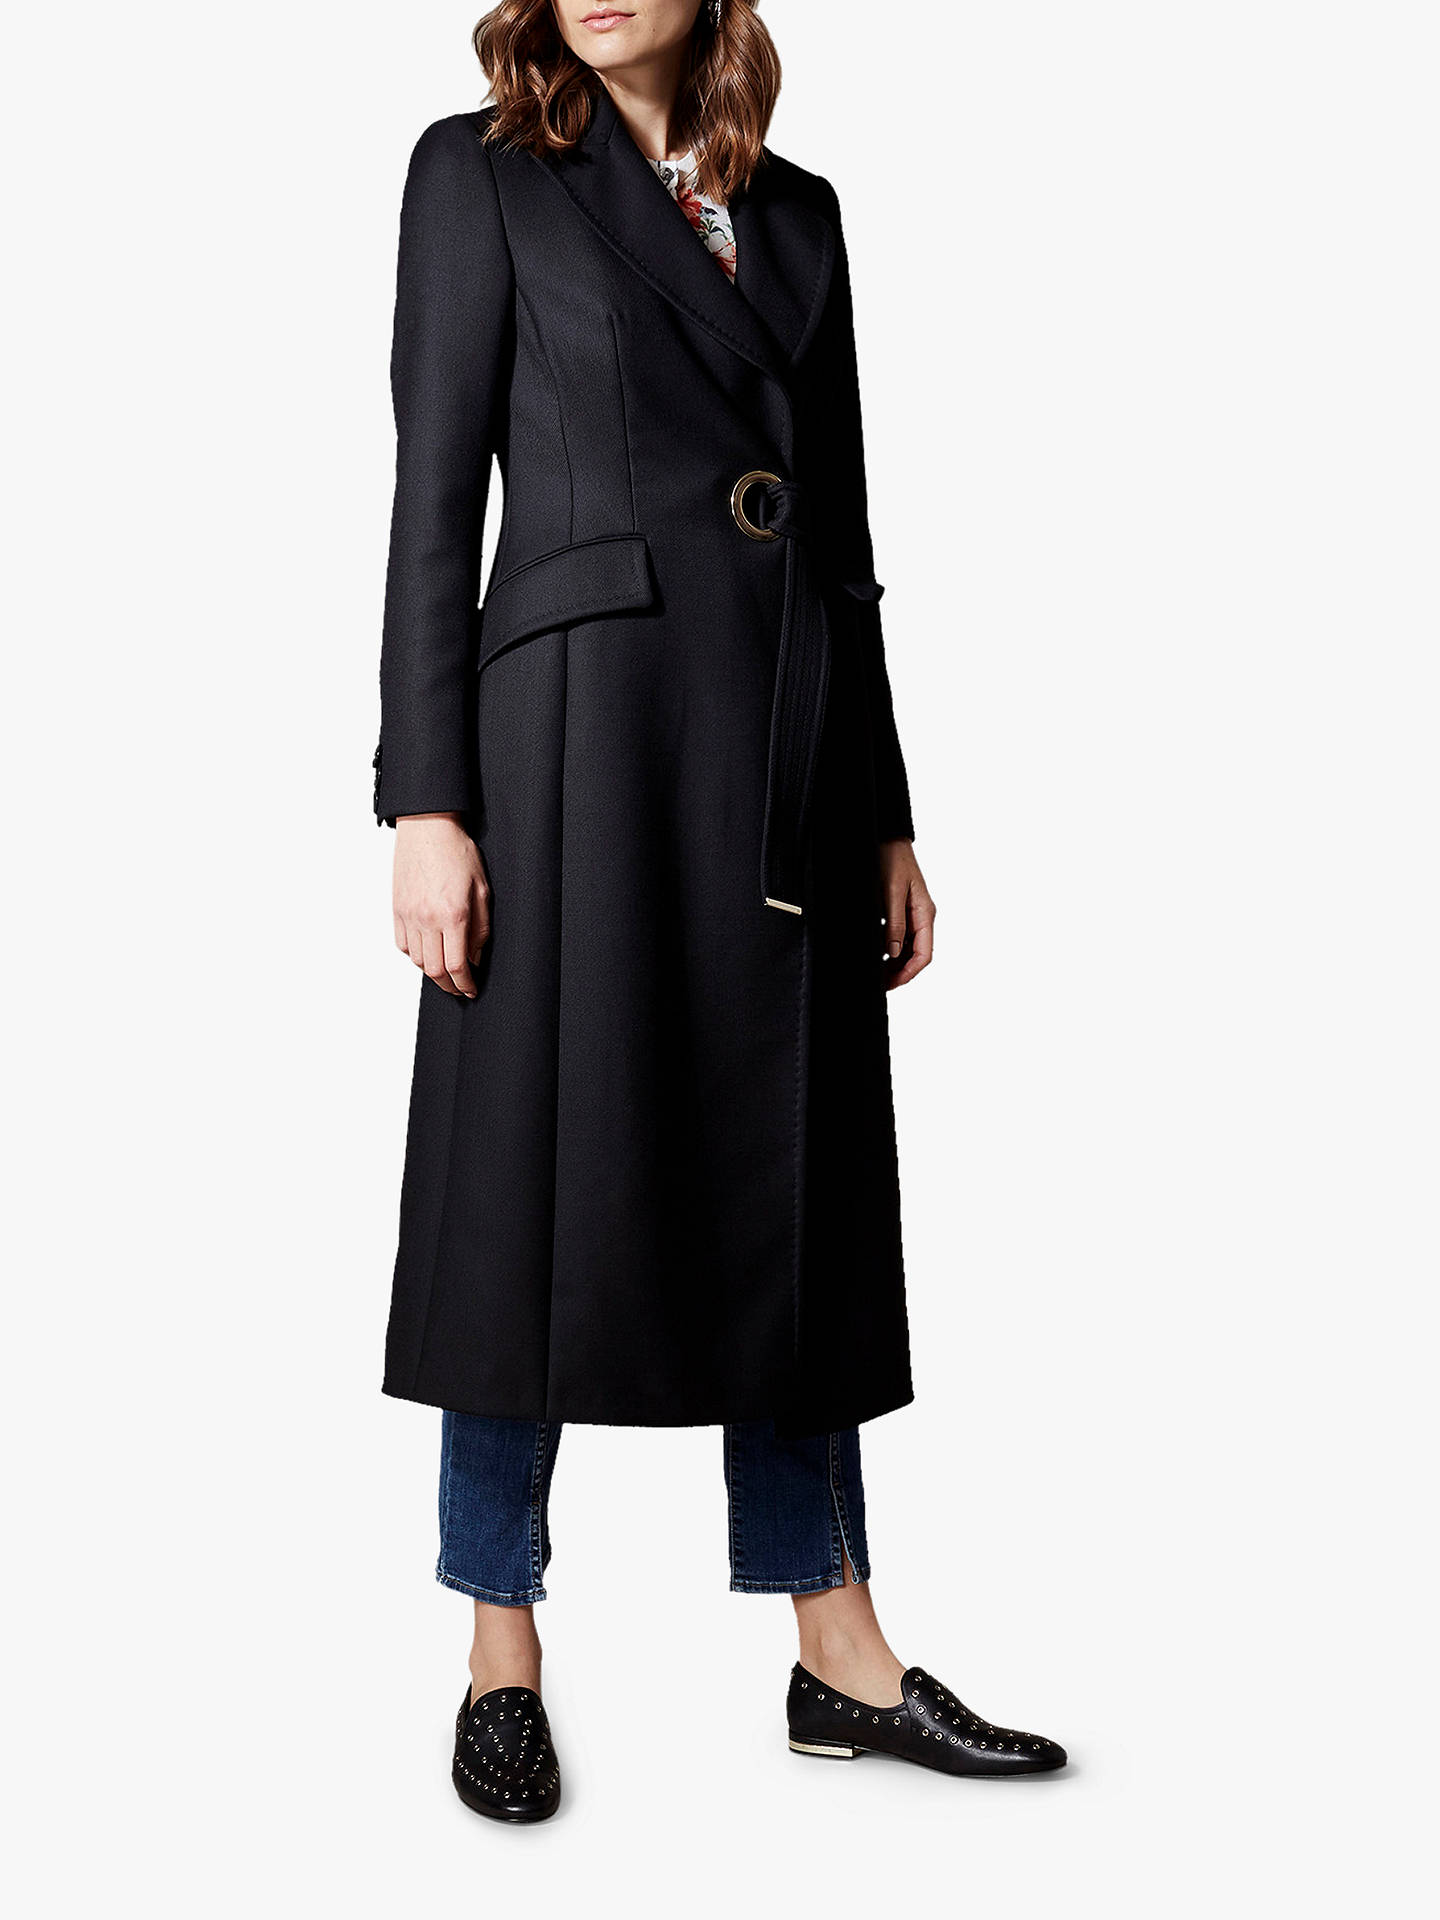 promo code attractive & durable bright in luster Karen Millen Tailored Wrap Coat, Black at John Lewis & Partners